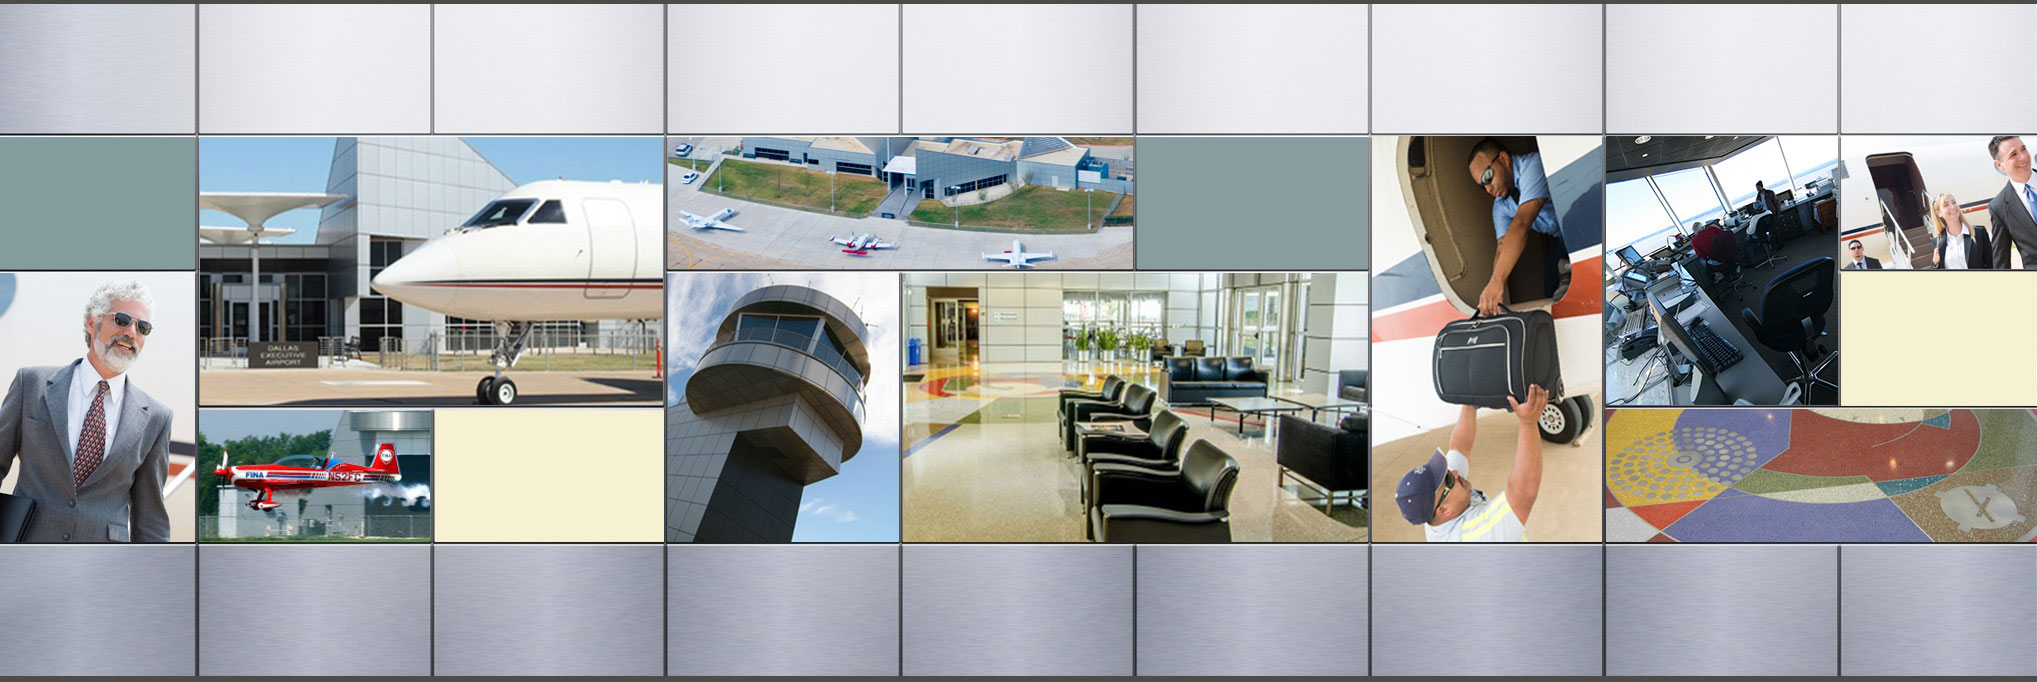 Dallas Executive Airport, terminal, control tower, airplanes, baggage